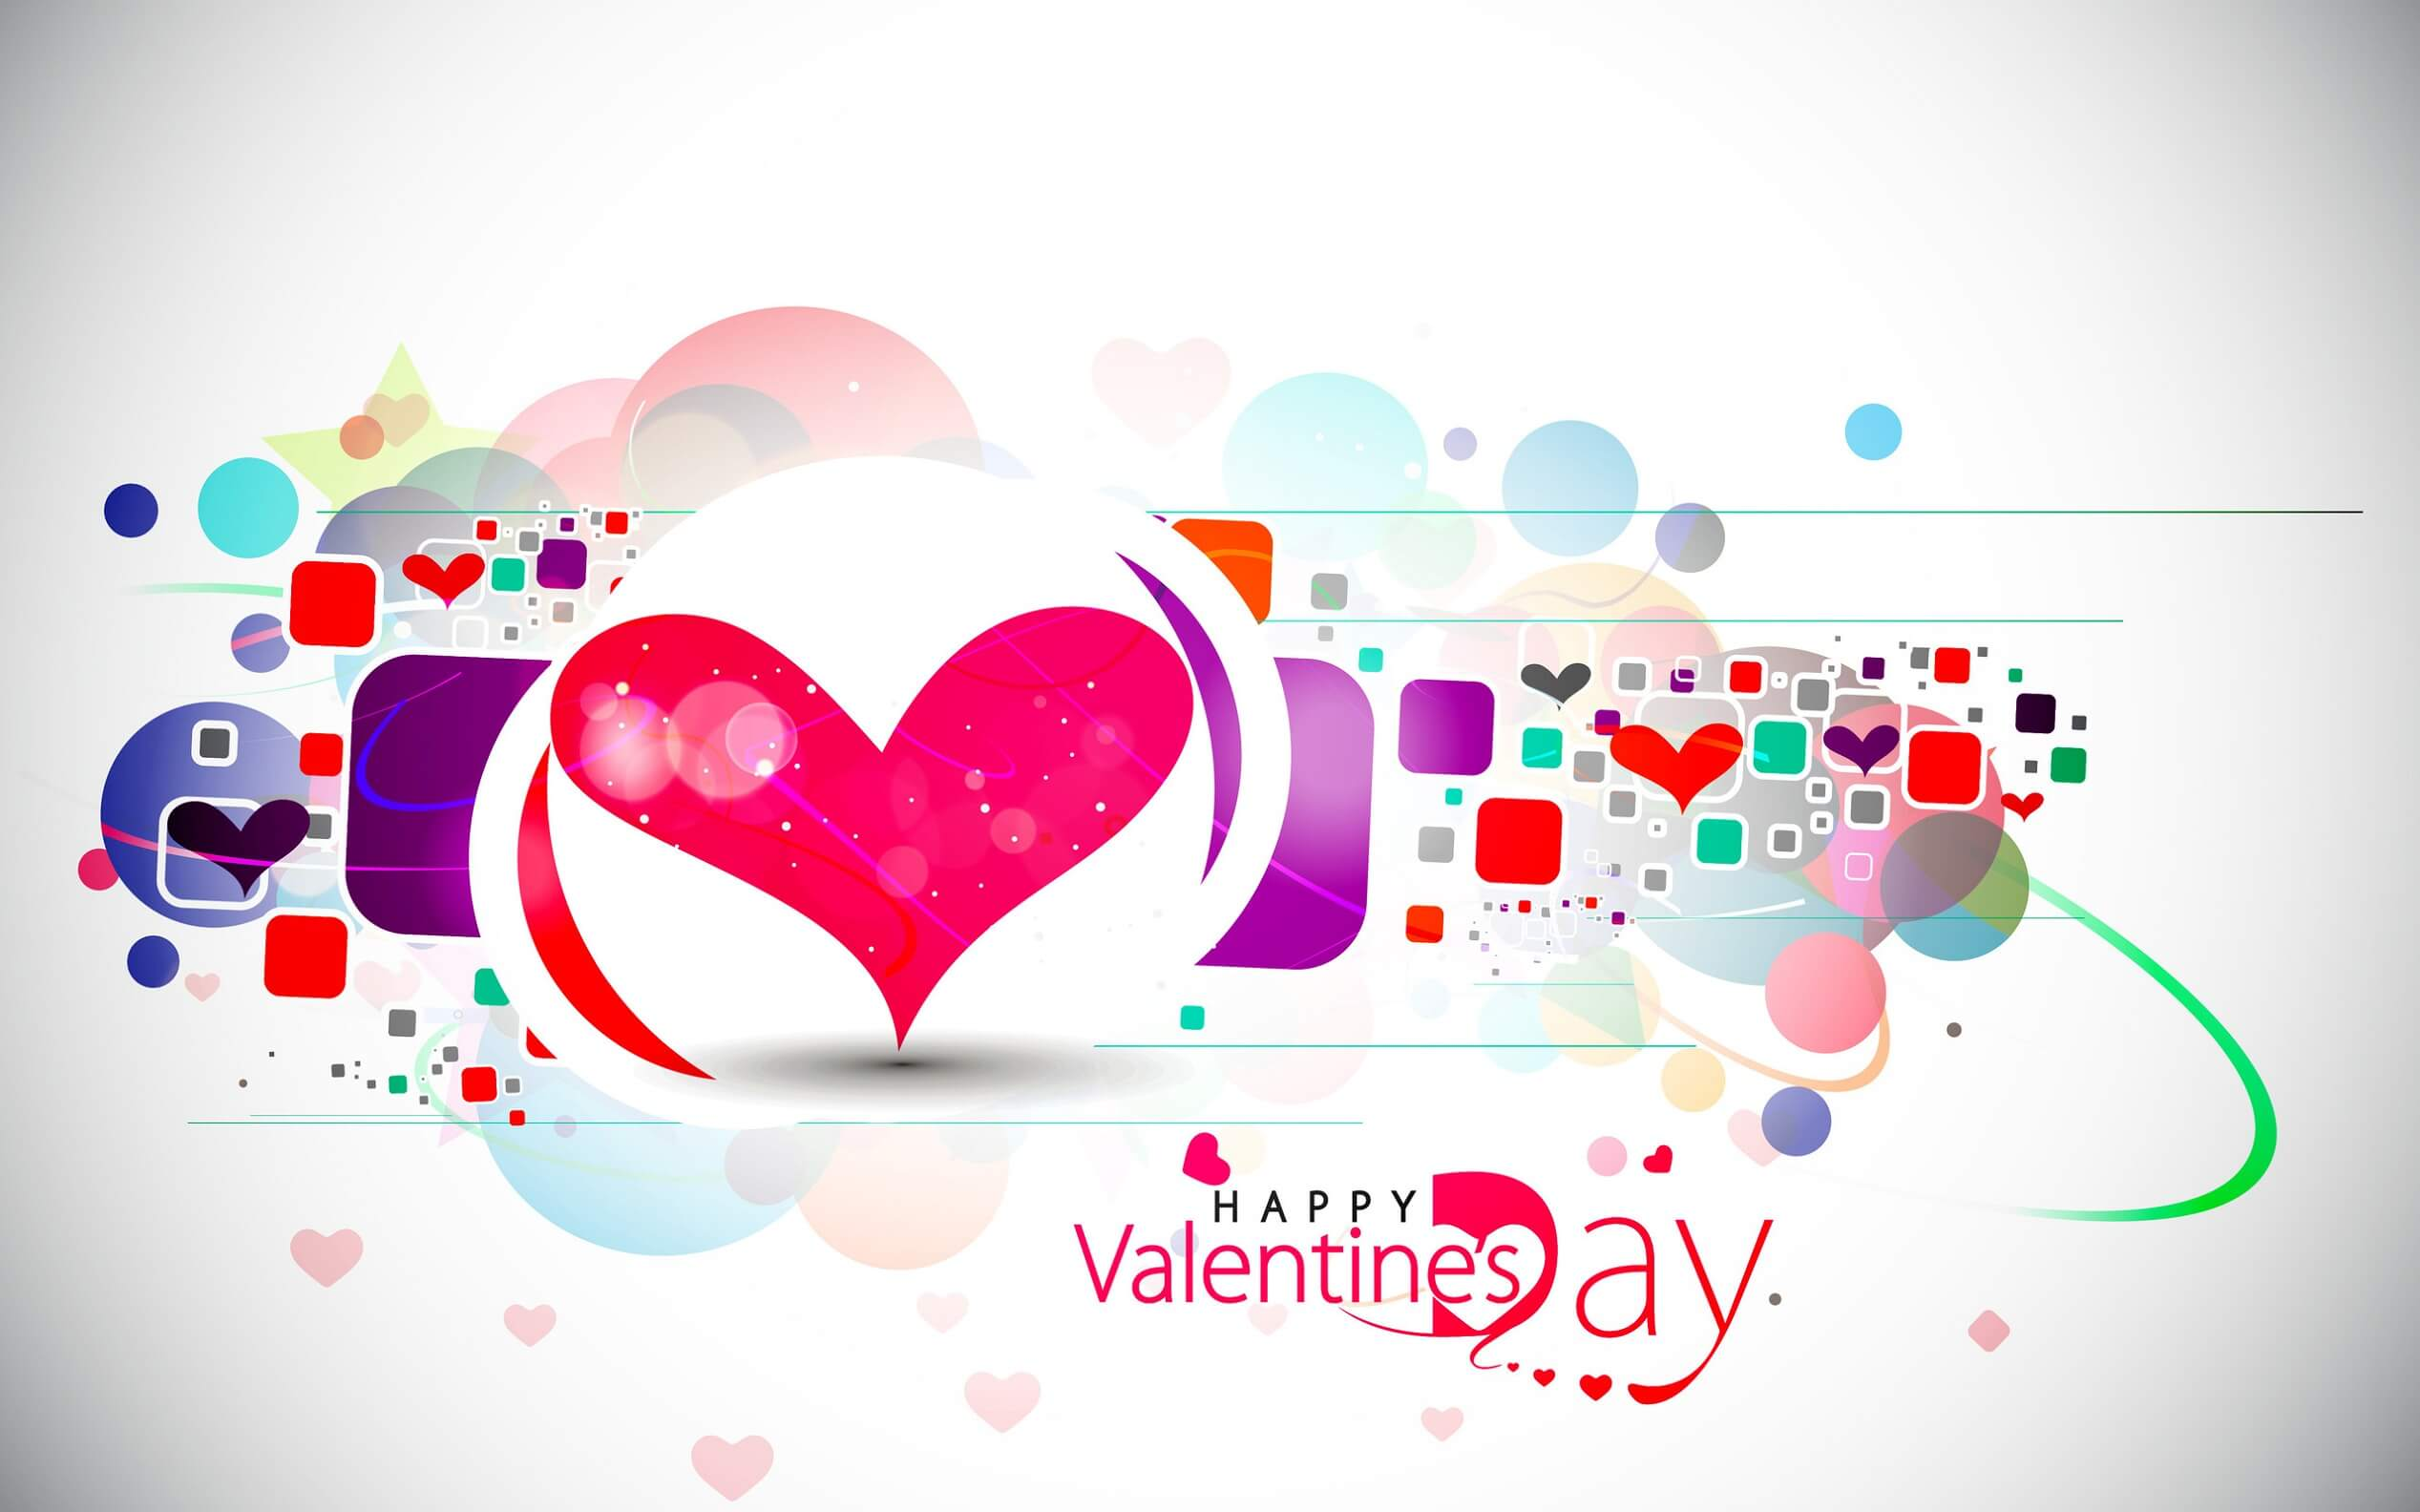 happy-valentines-day-images-pictures06